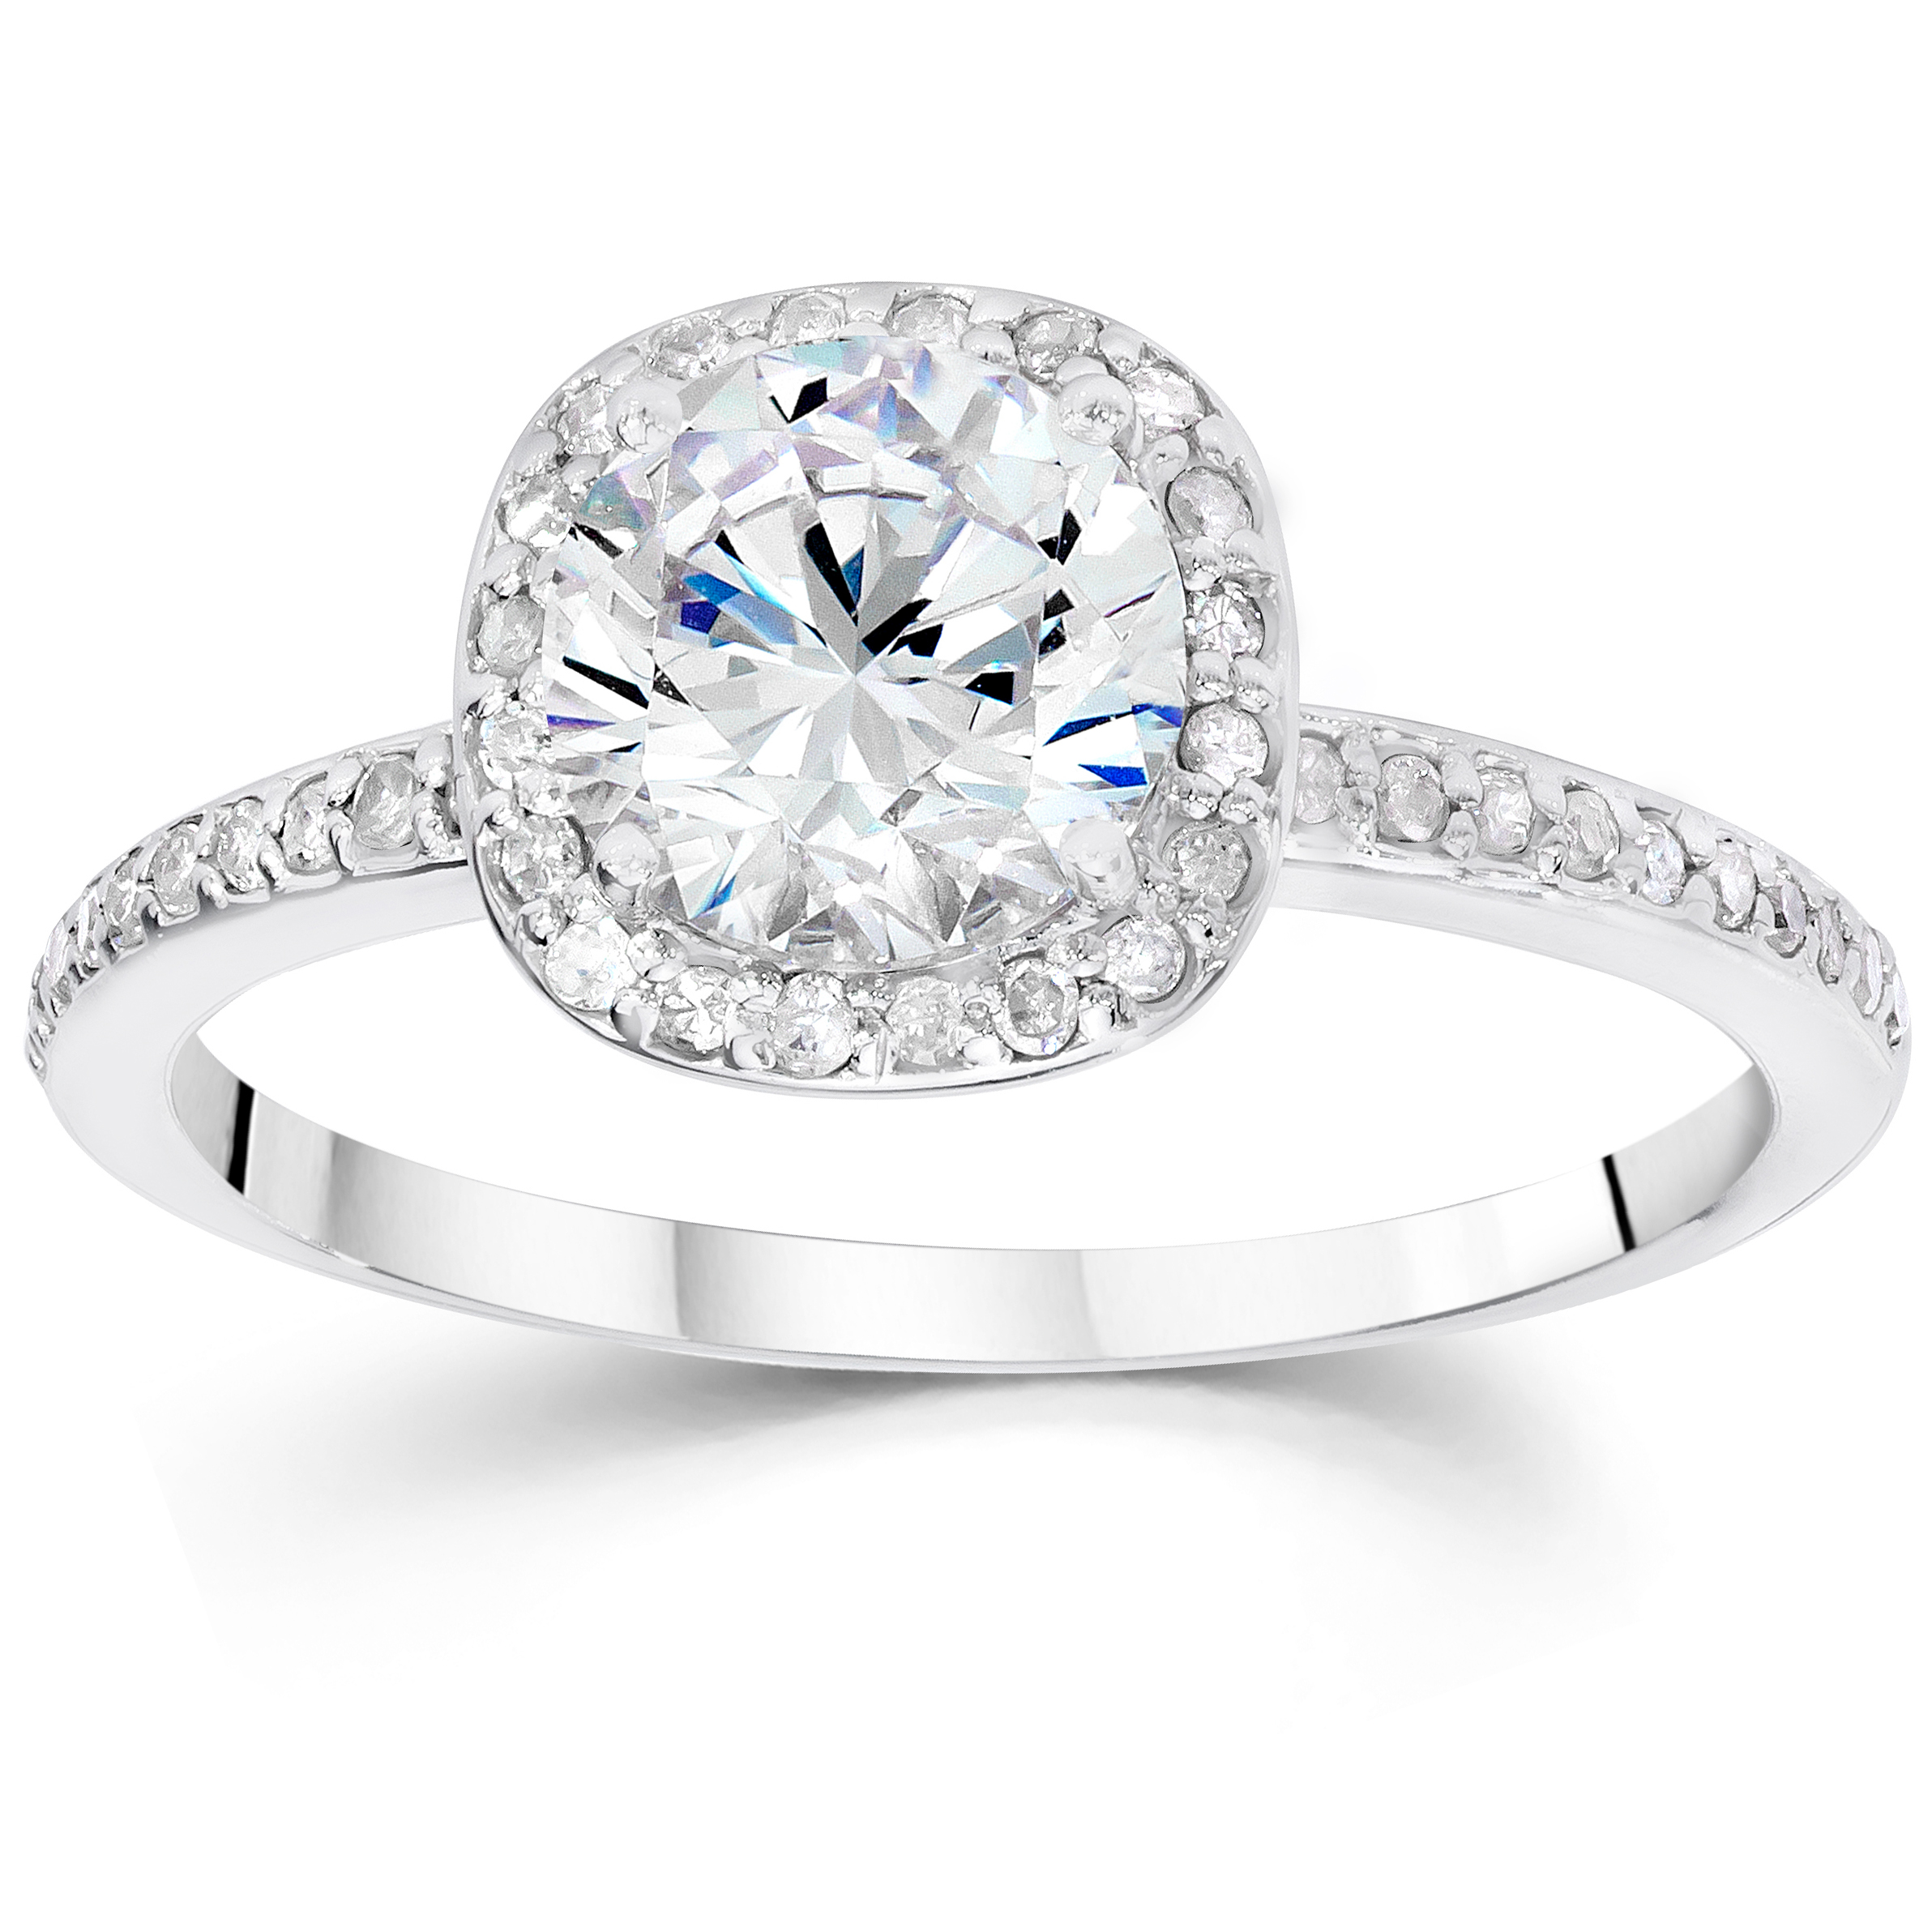 5 8ct Cushion Halo Diamond Engagement Ring 14K White Gold Solitaire Round Cut by Pompeii3